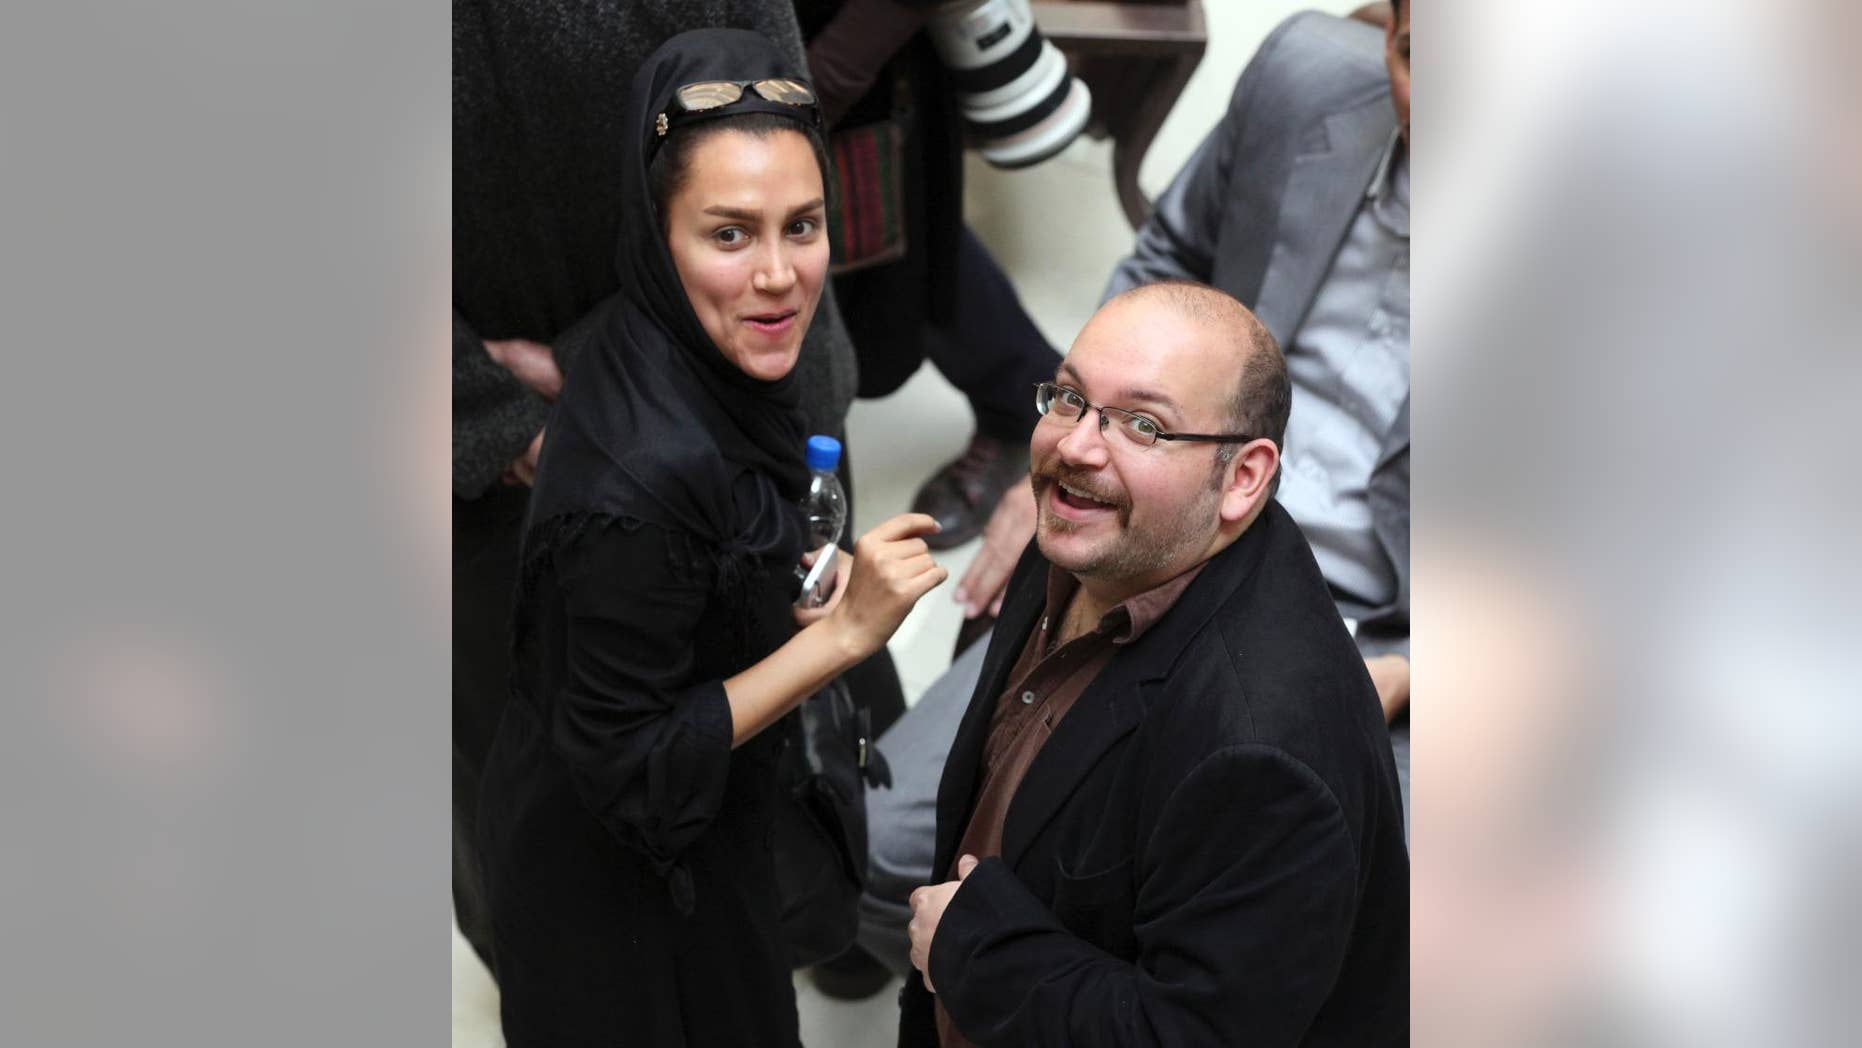 In this photo taken on April 11, 2013, Jason Rezaian, right, an Iranian-American correspondent for the Washington Post, and his wife Yeganeh Salehi, an Iranian correspondent for the Abu Dhabi-based daily newspaper The National, smile as they attend a presidential campaign of President Hassan Rouhani in Tehran, Iran. They have been held in custody for a month since their detention July 2014 in Iran, suggesting a possible struggle between a new guard of moderates pushing for greater freedom and the old hard-line establishment. (AP Photo/Vahid Salemi)